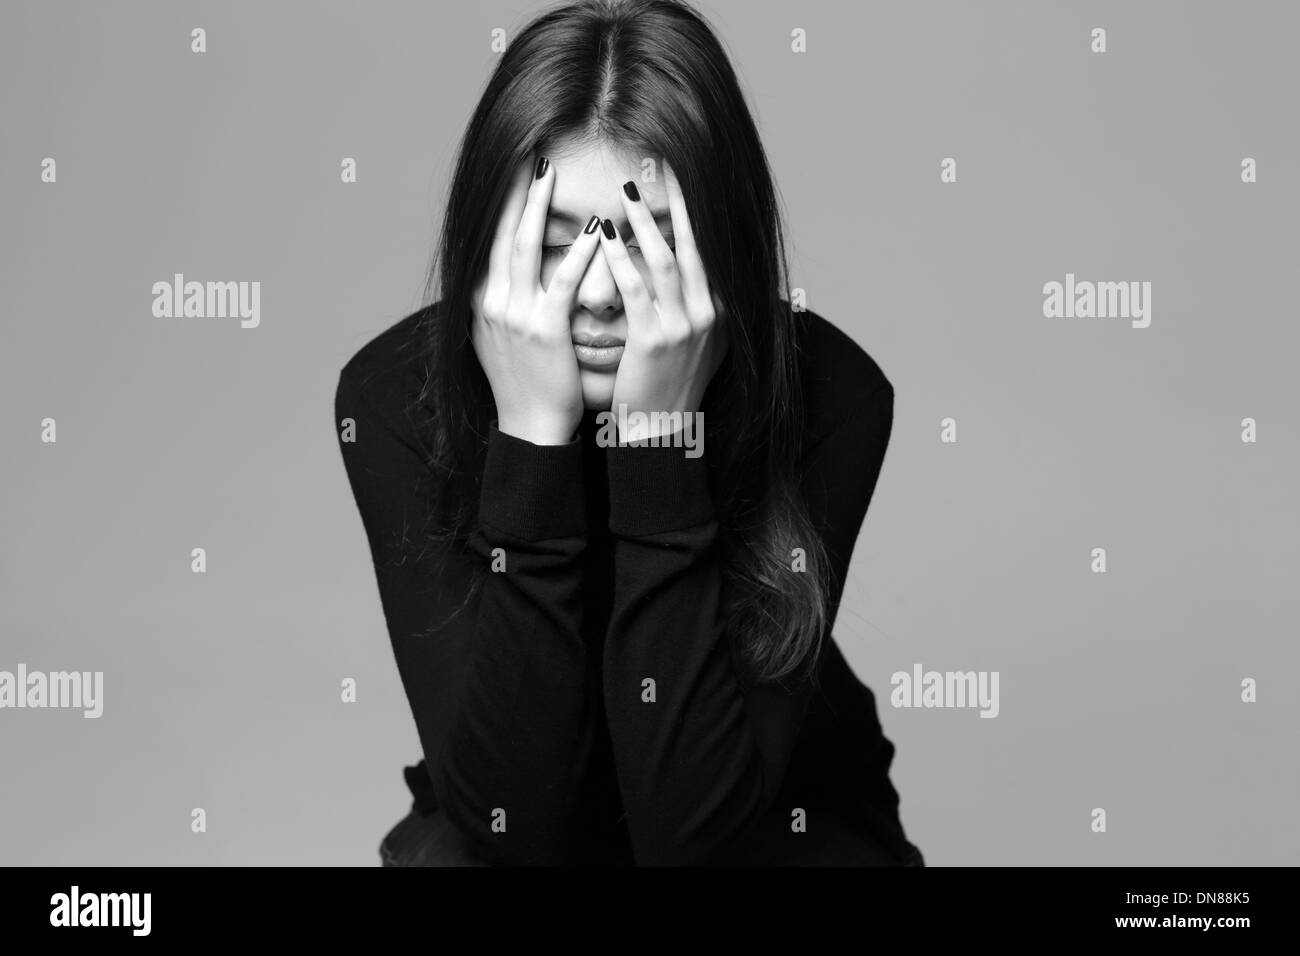 Black and white photo of a depressed young woman with hands over her head - Stock Image